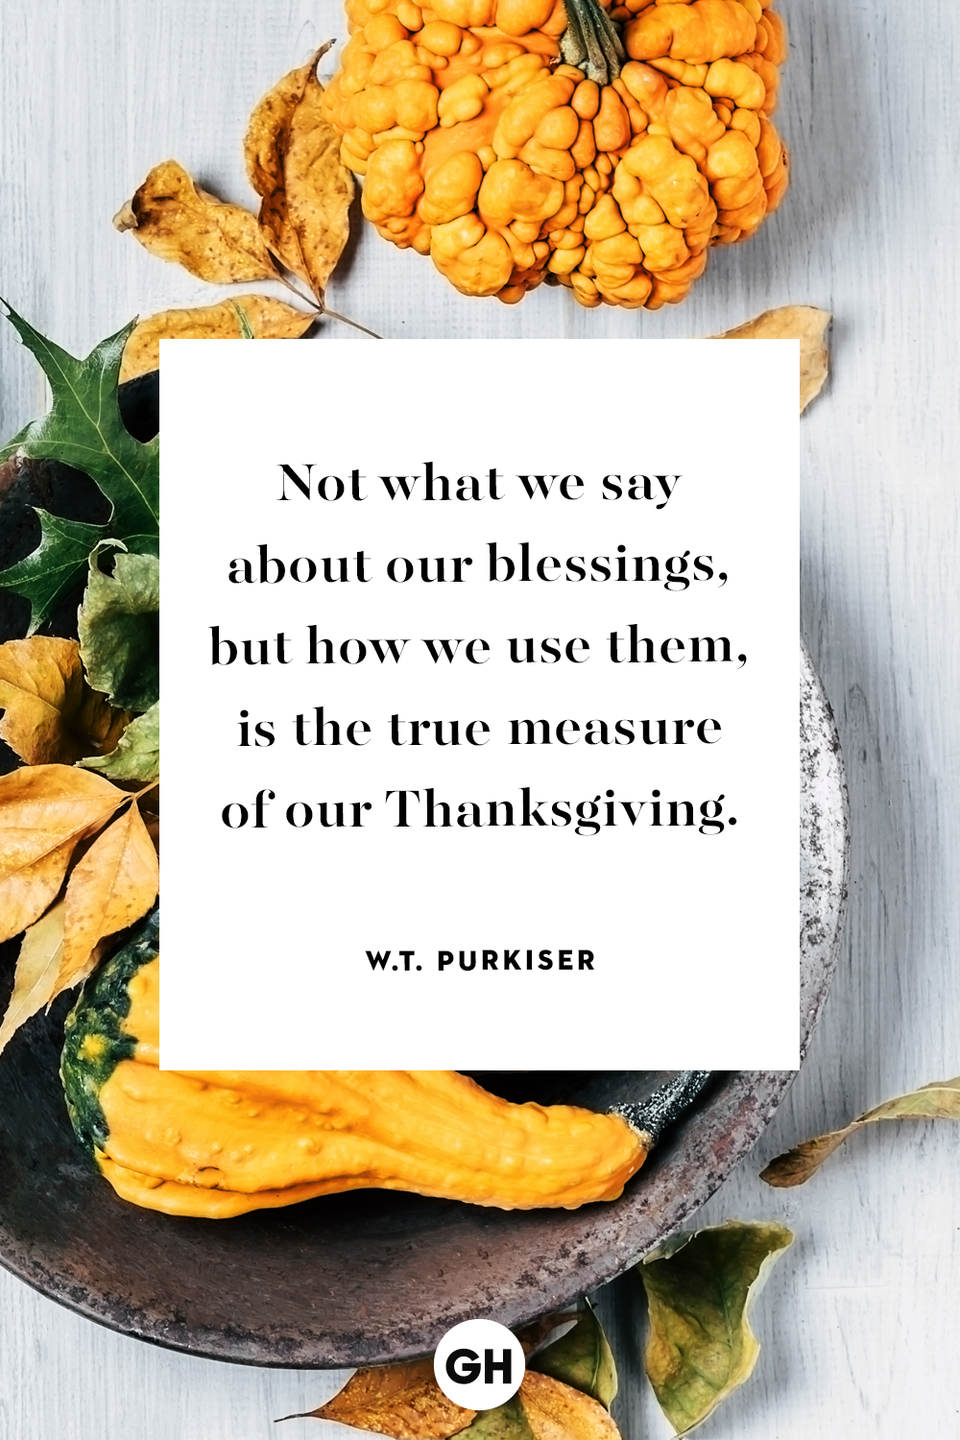 <p>Not what we say about our blessings, but how we use them, is the true measure of our Thanksgiving.</p>